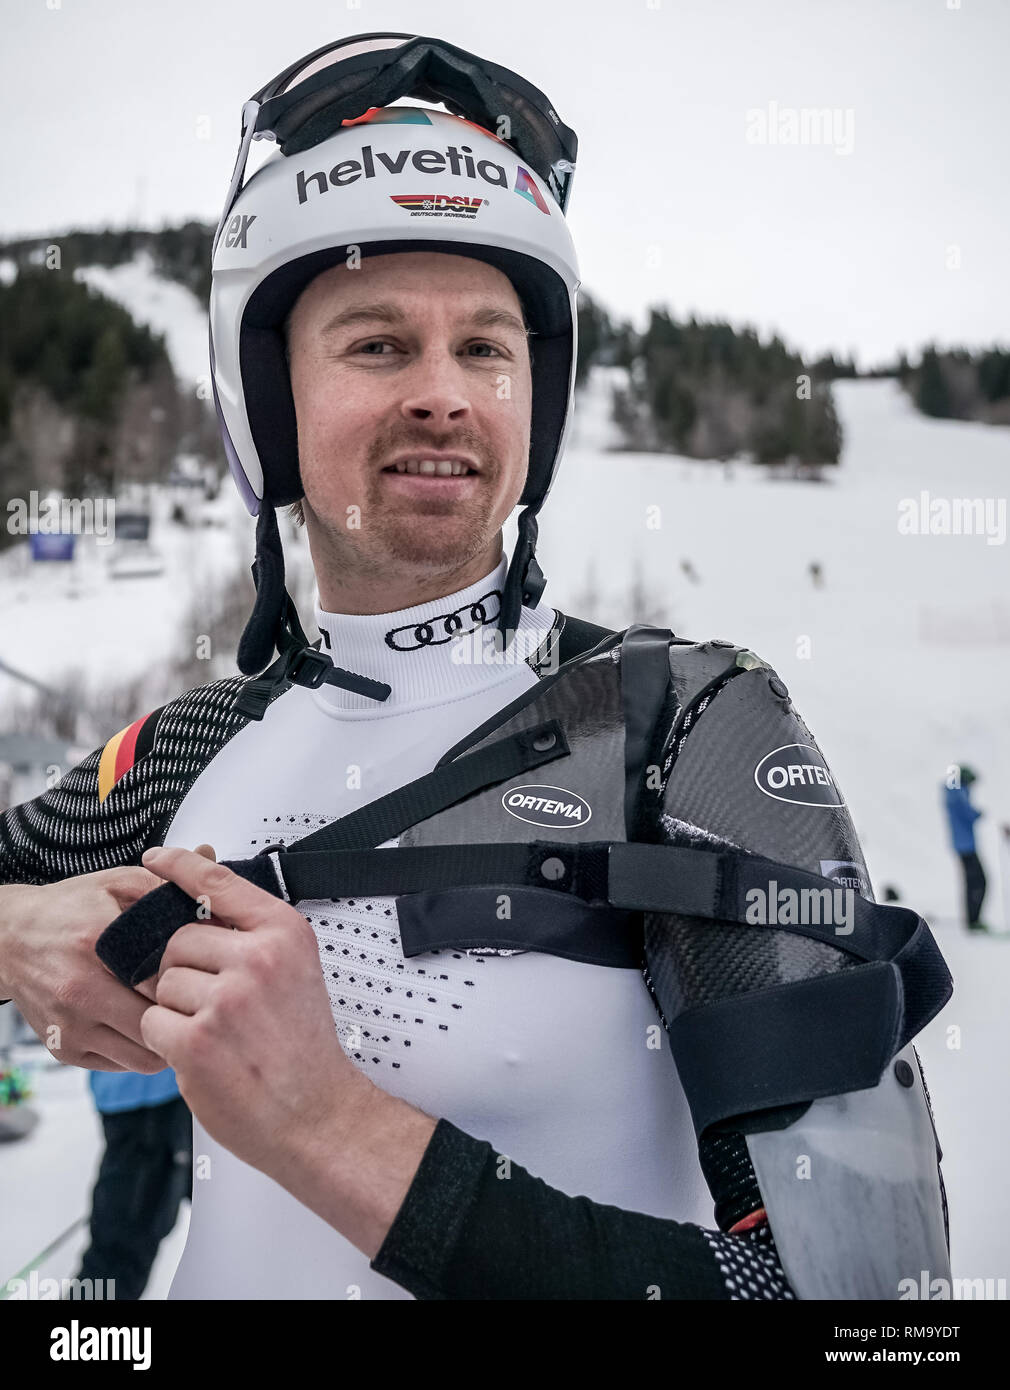 Are, Sweden. 14th Feb, 2019. Ski alpin, World Championship, Giant Slalom, Men: Stefan Luitz from Germany after the training for the Giant Slalom. Luitz has been wearing an orthosis on his left shoulder since a shoulder injury. Credit: Michael Kappeler/dpa/Alamy Live News - Stock Image